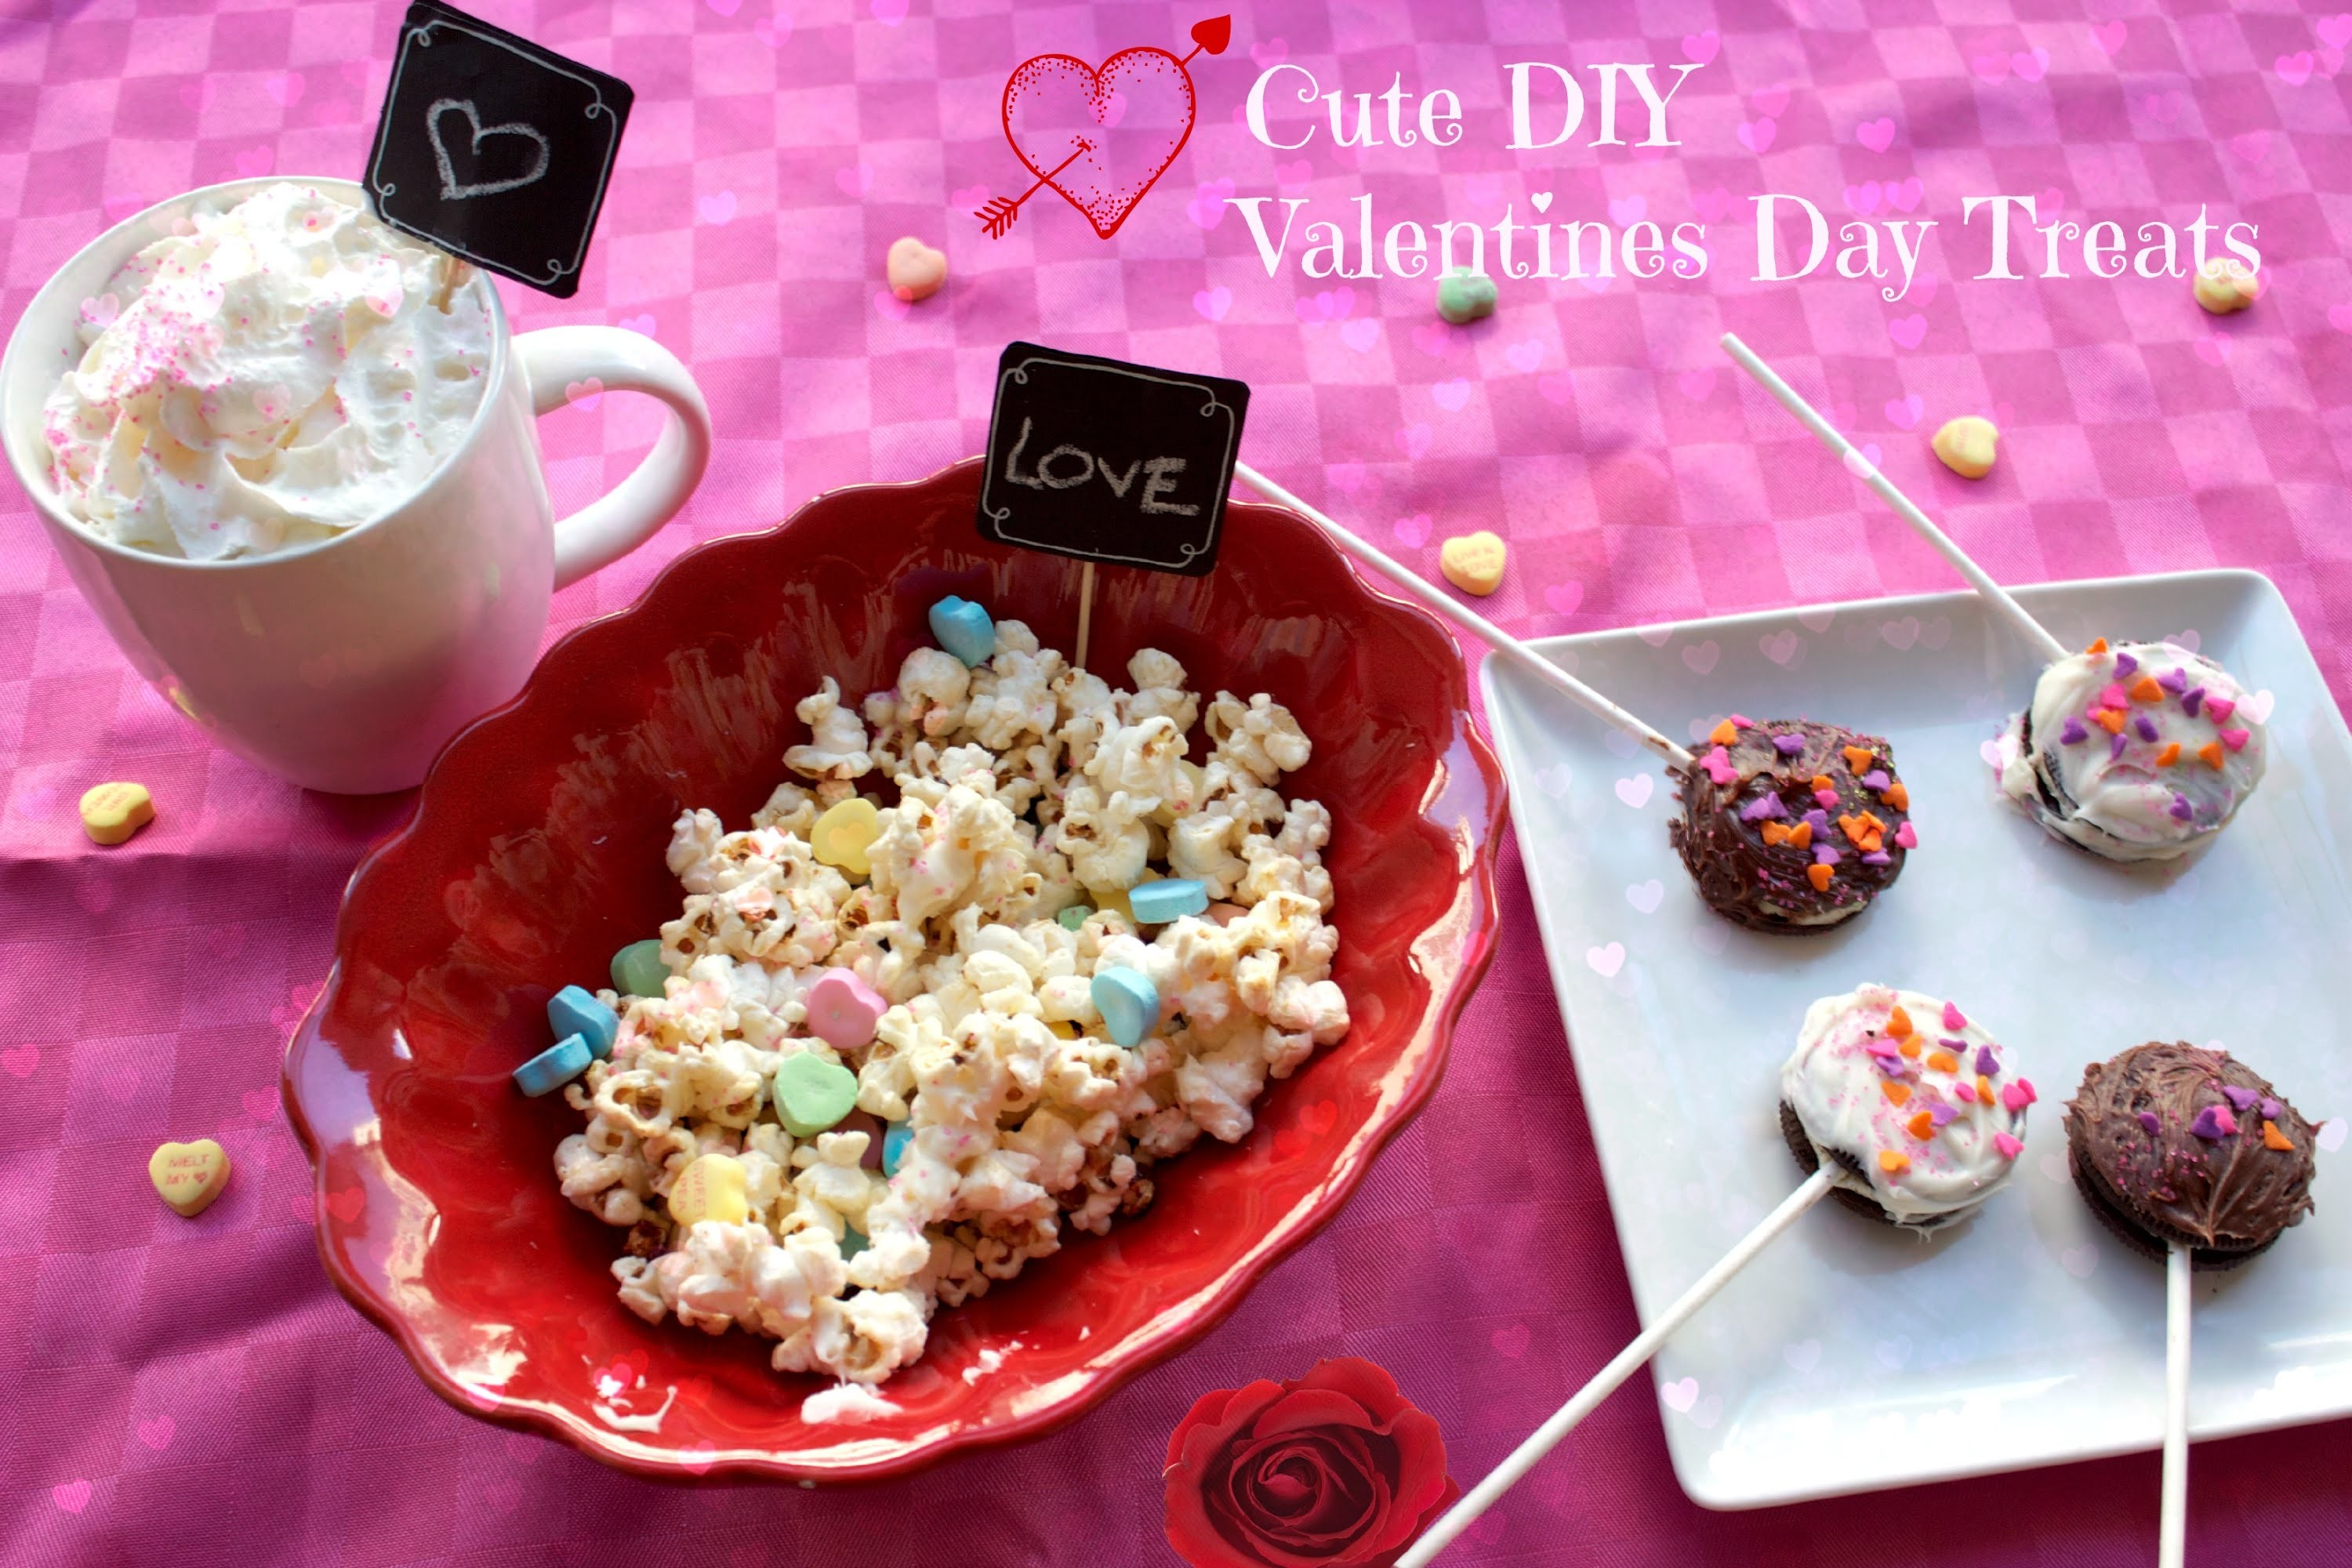 DIY Cute and yummy Valentine's Day treats!